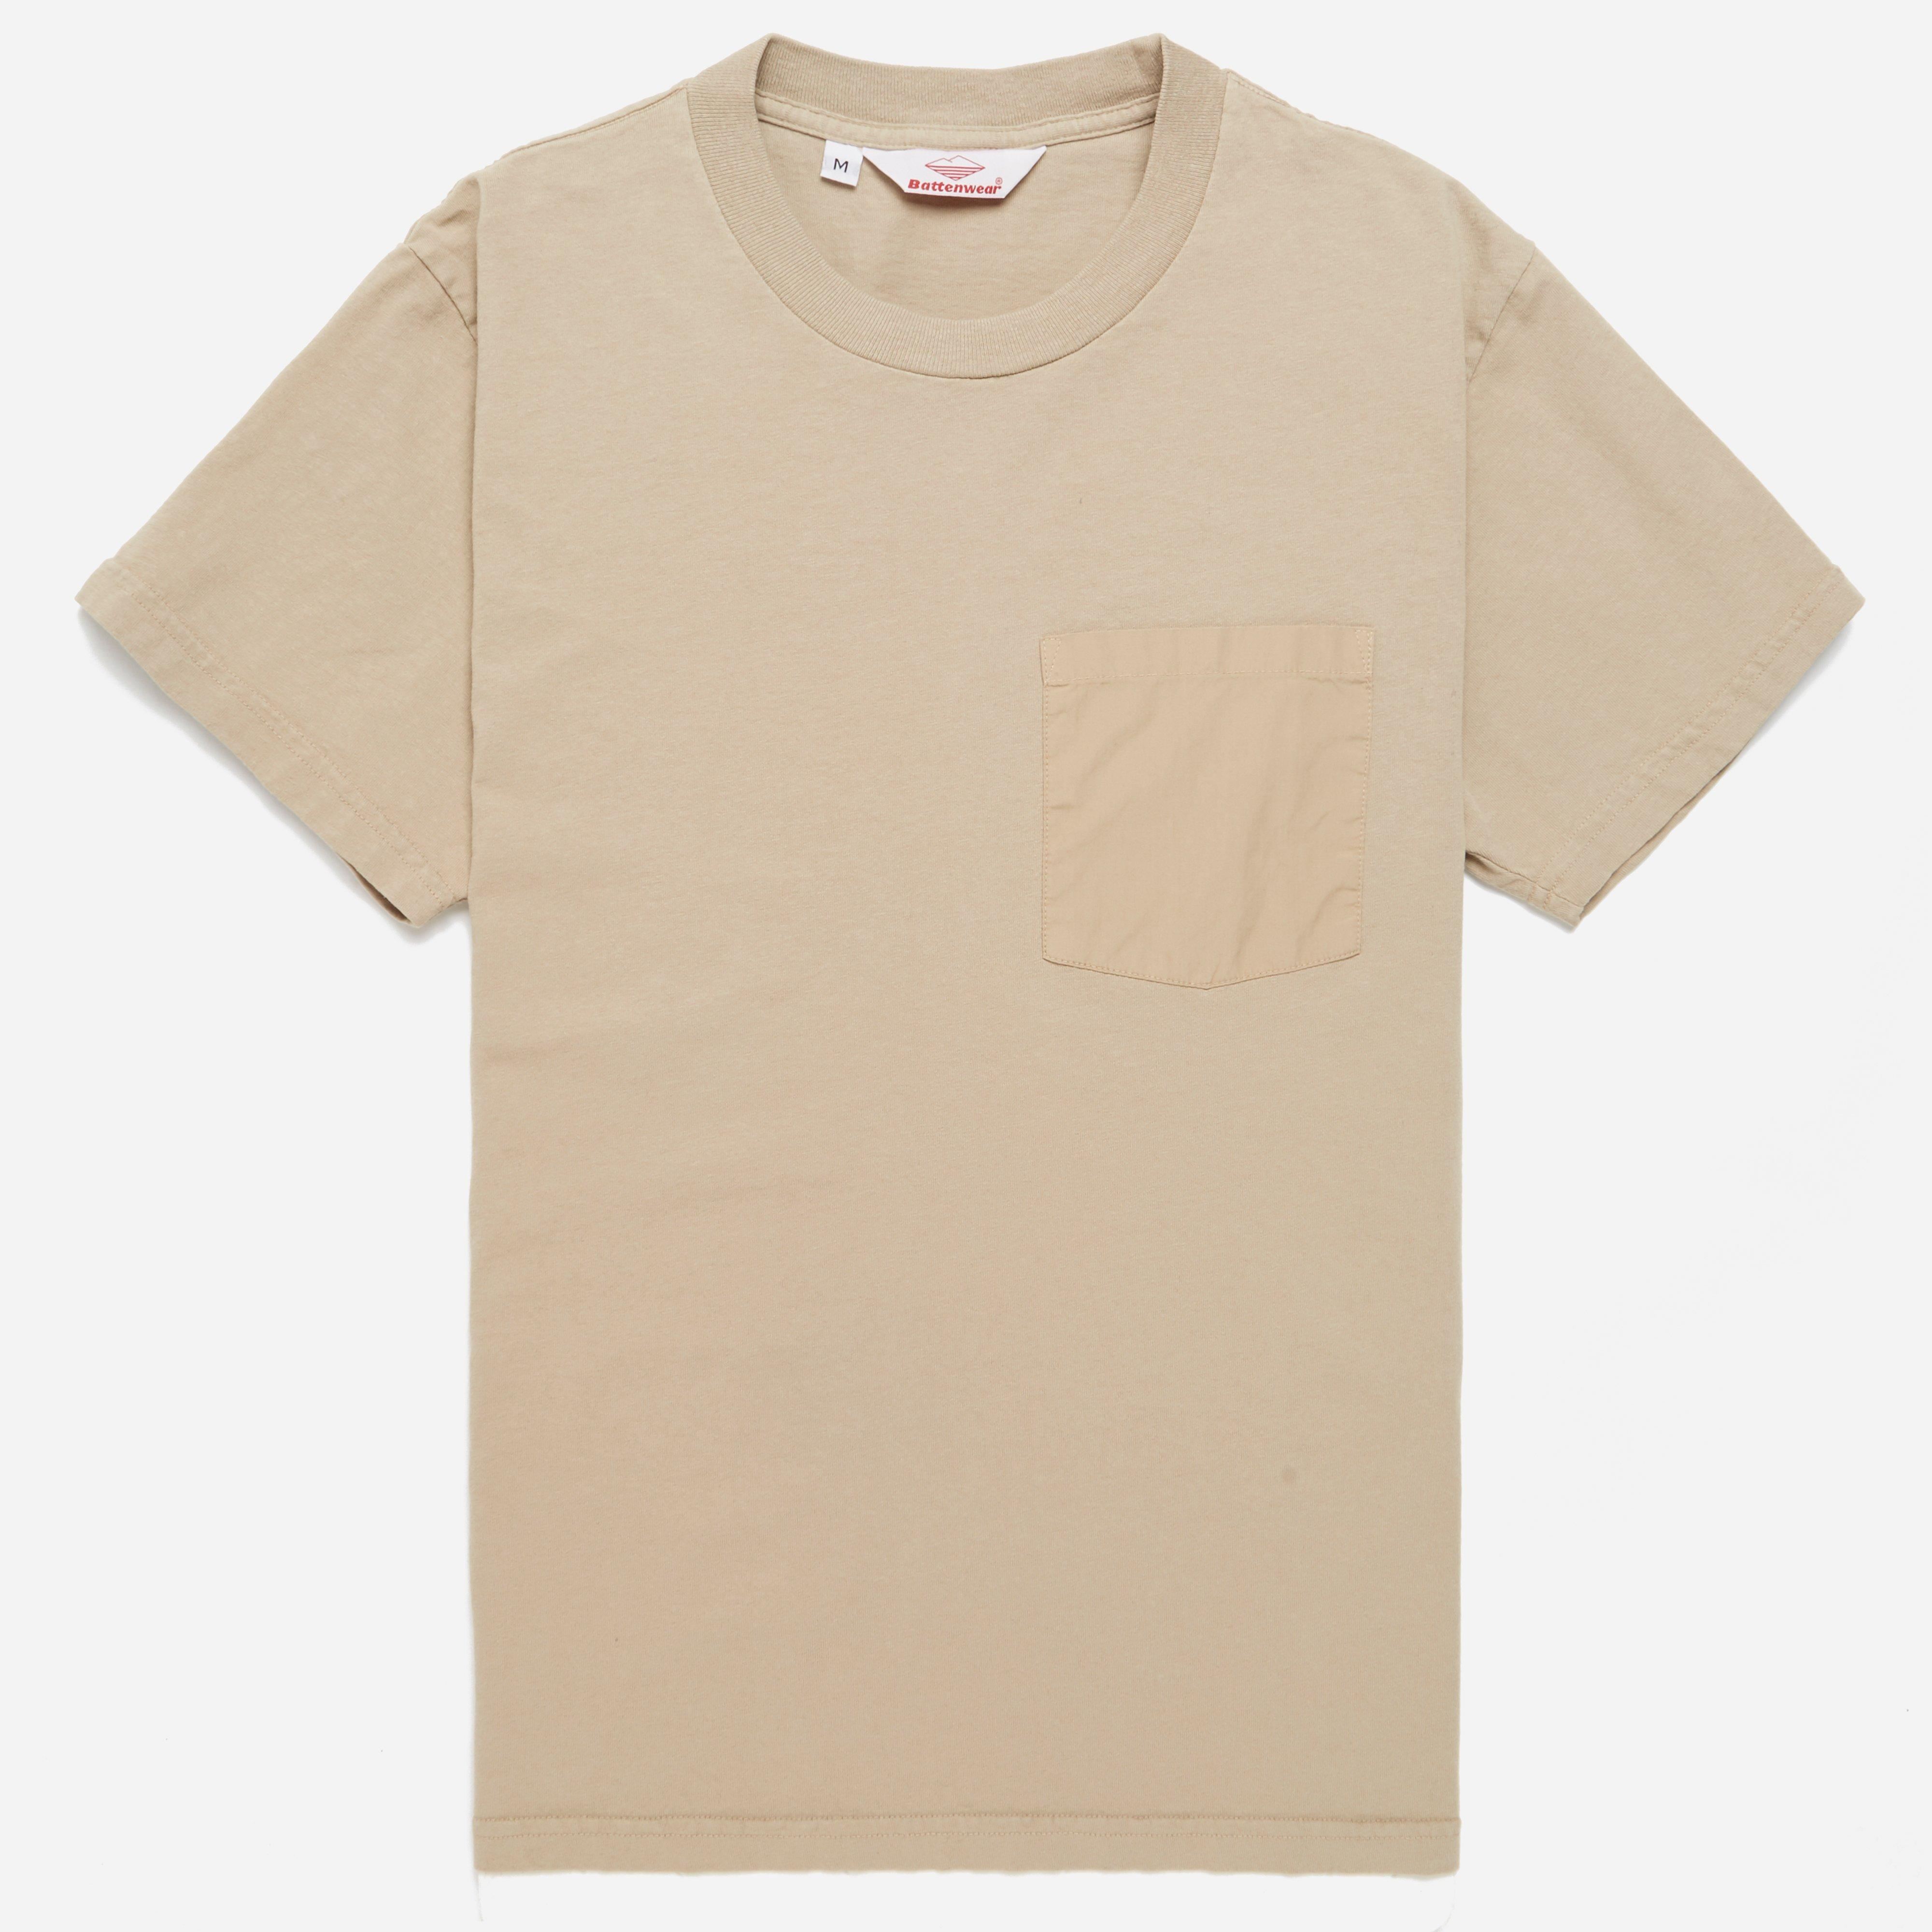 Battenwear Pocket T-shirt